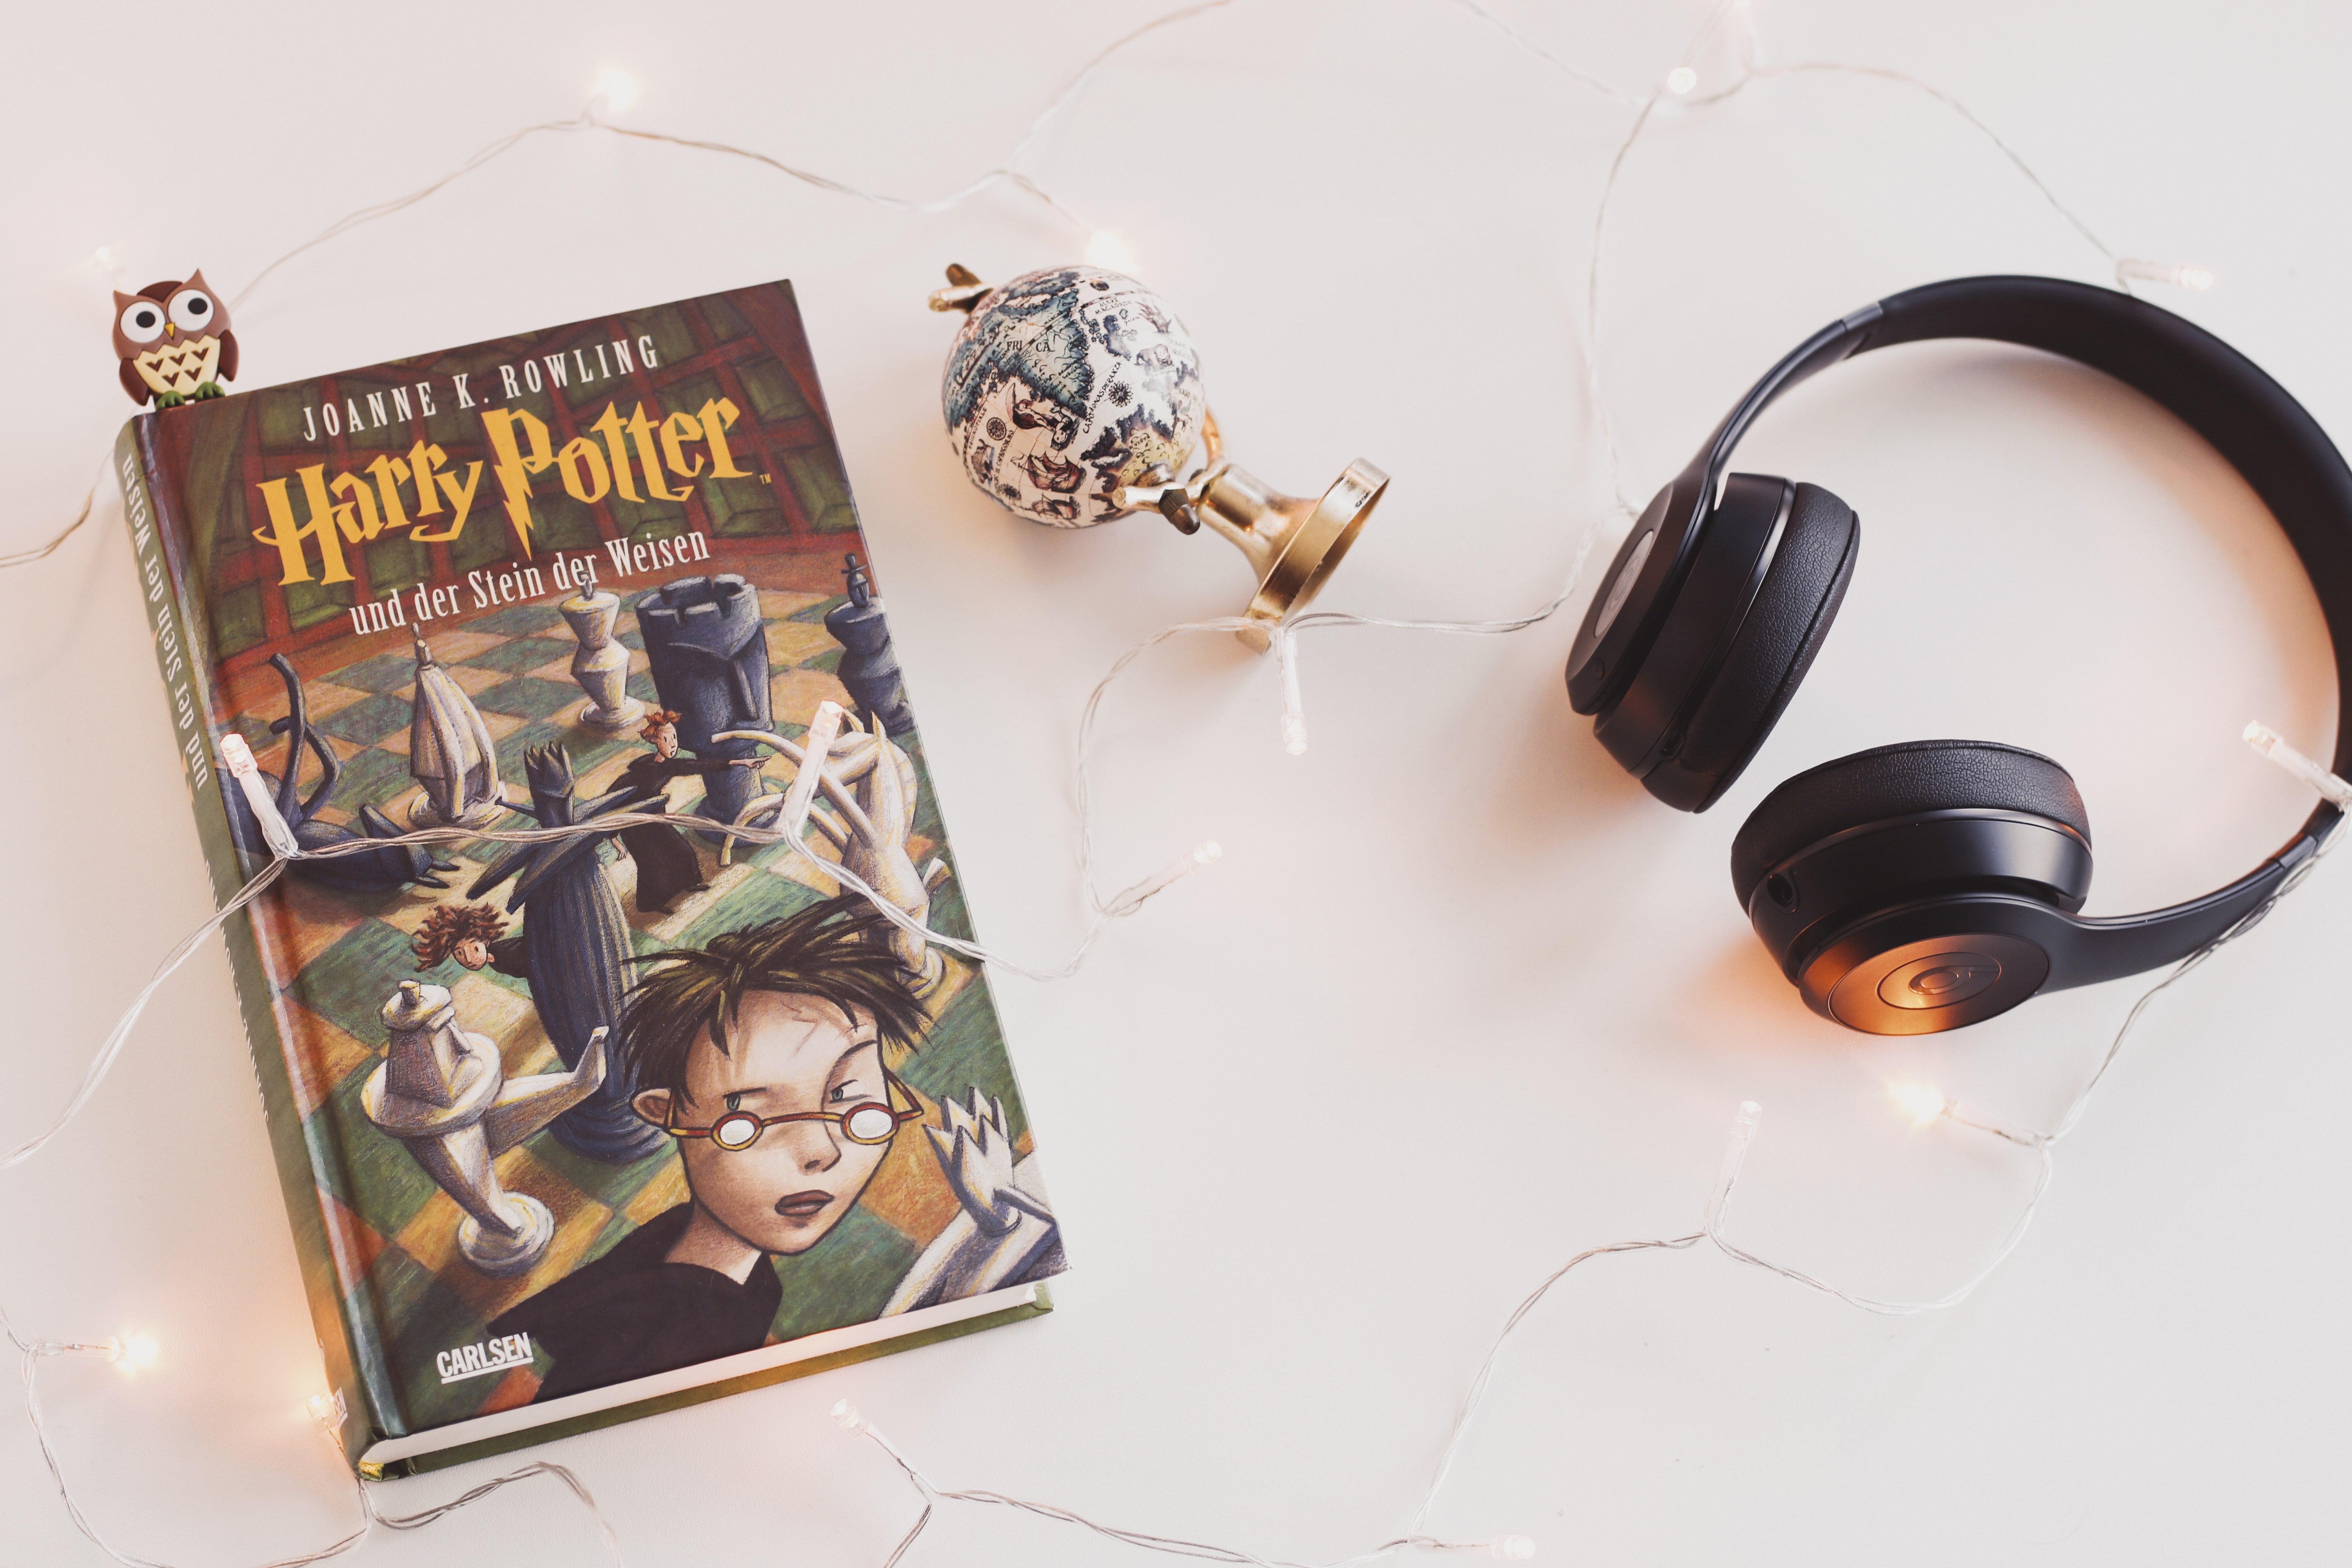 harry-potter-book-and-black-headphones-with-trinket-1005012